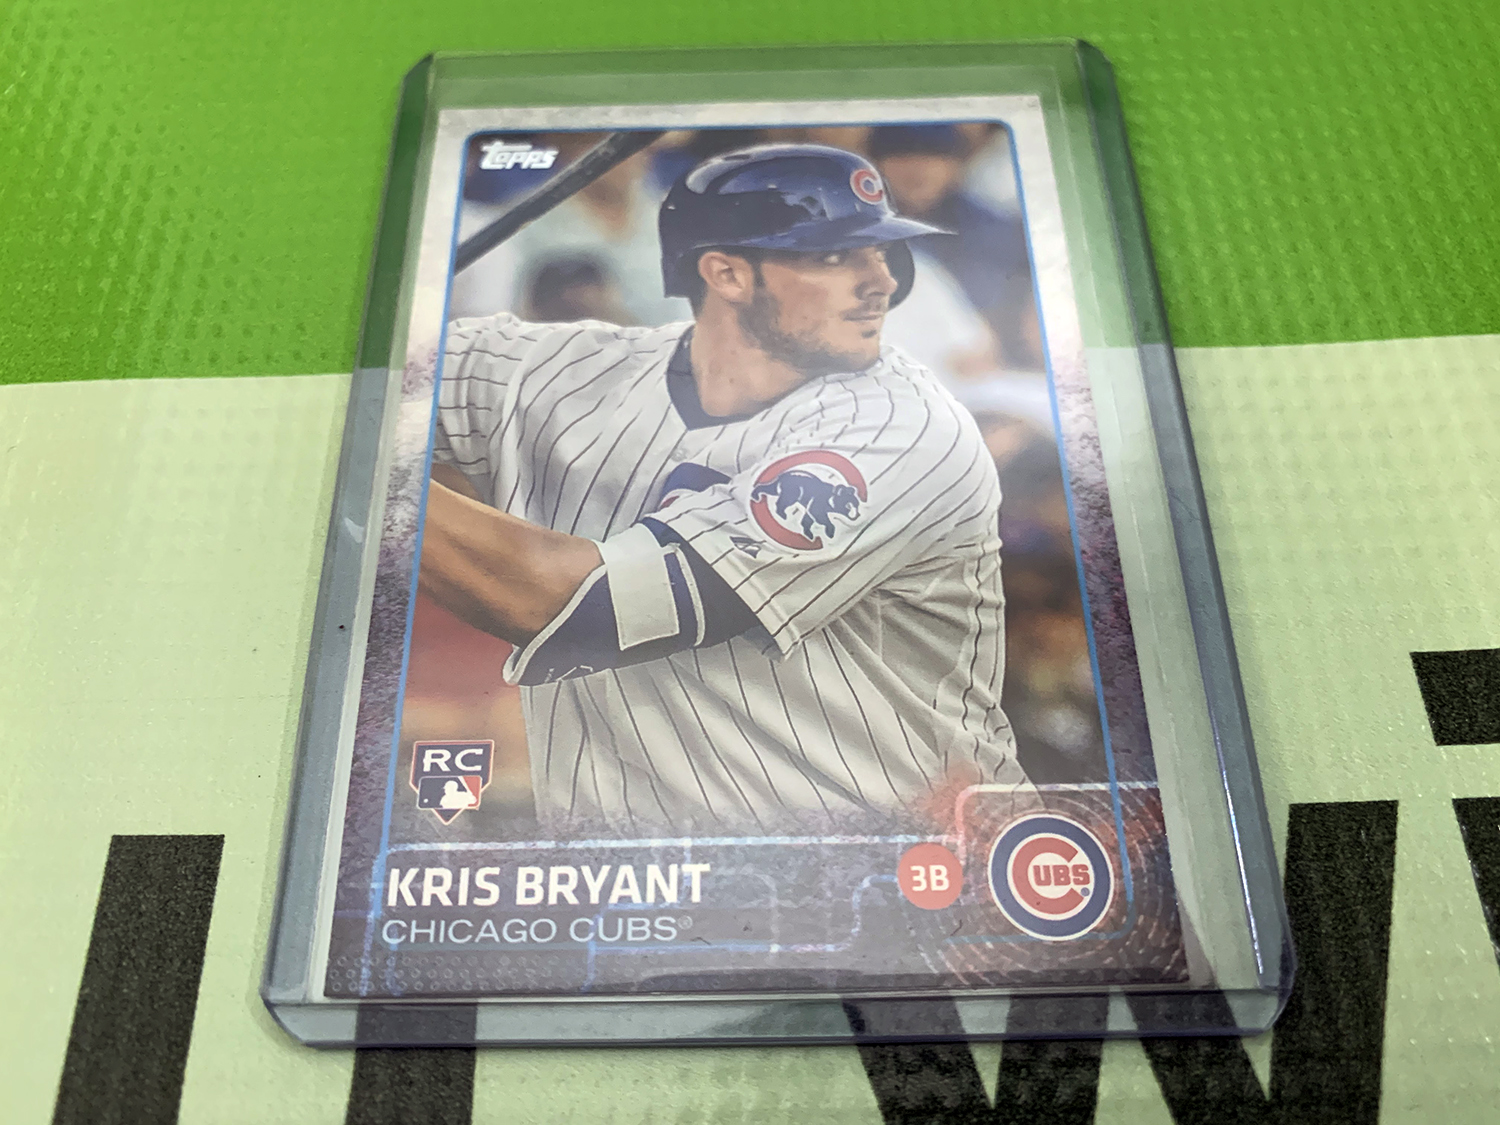 2015 Topps 616 Kris Bryant Rookie Card SEE VIDEO